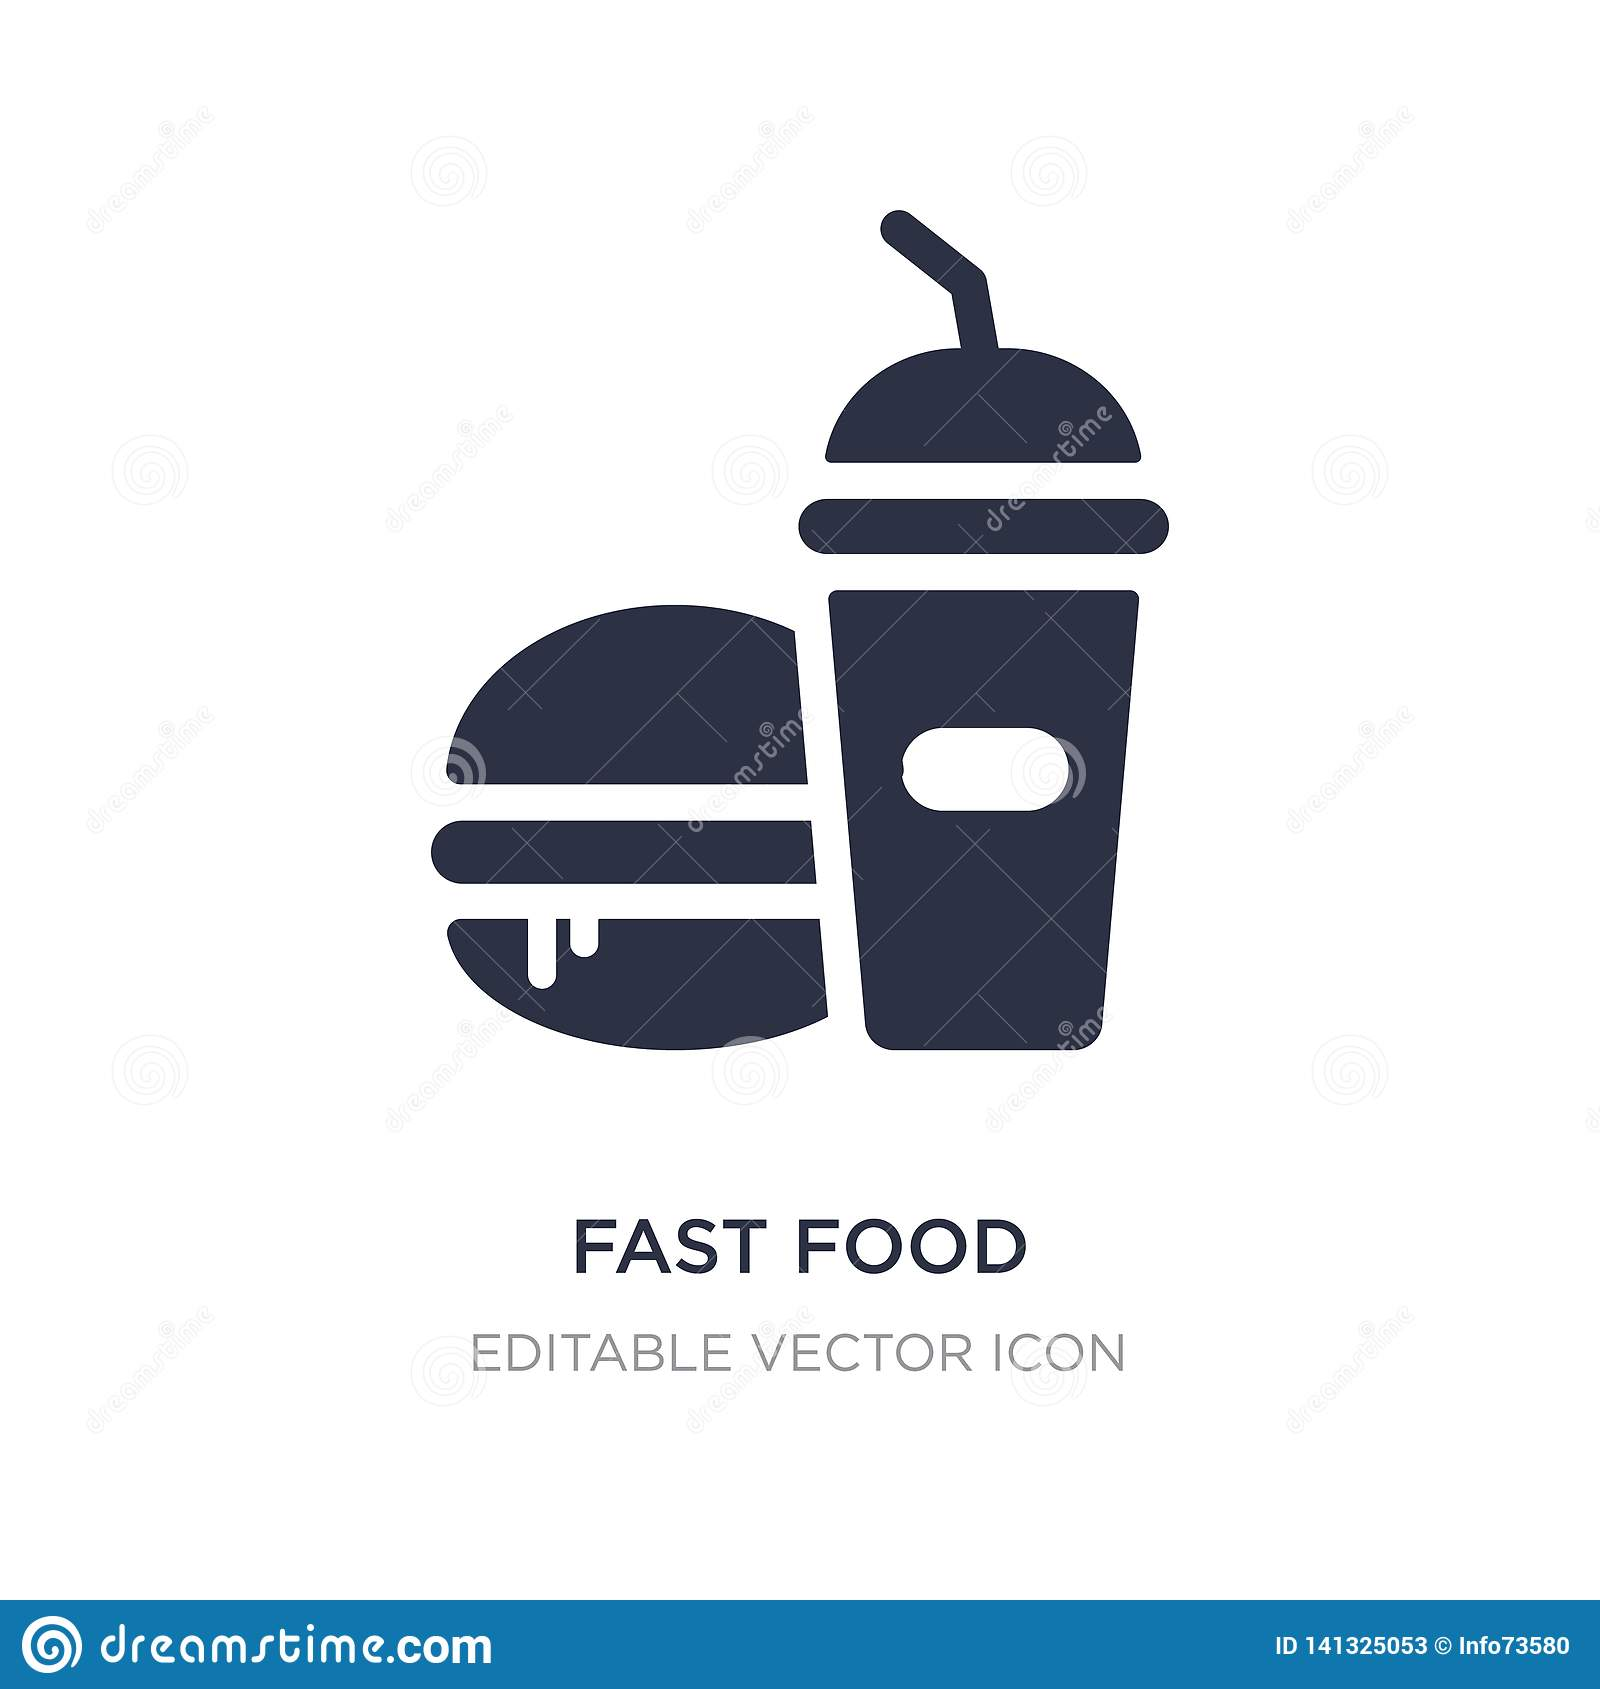 fast food restaurant icon on white background. Simple element illustration from Food concept